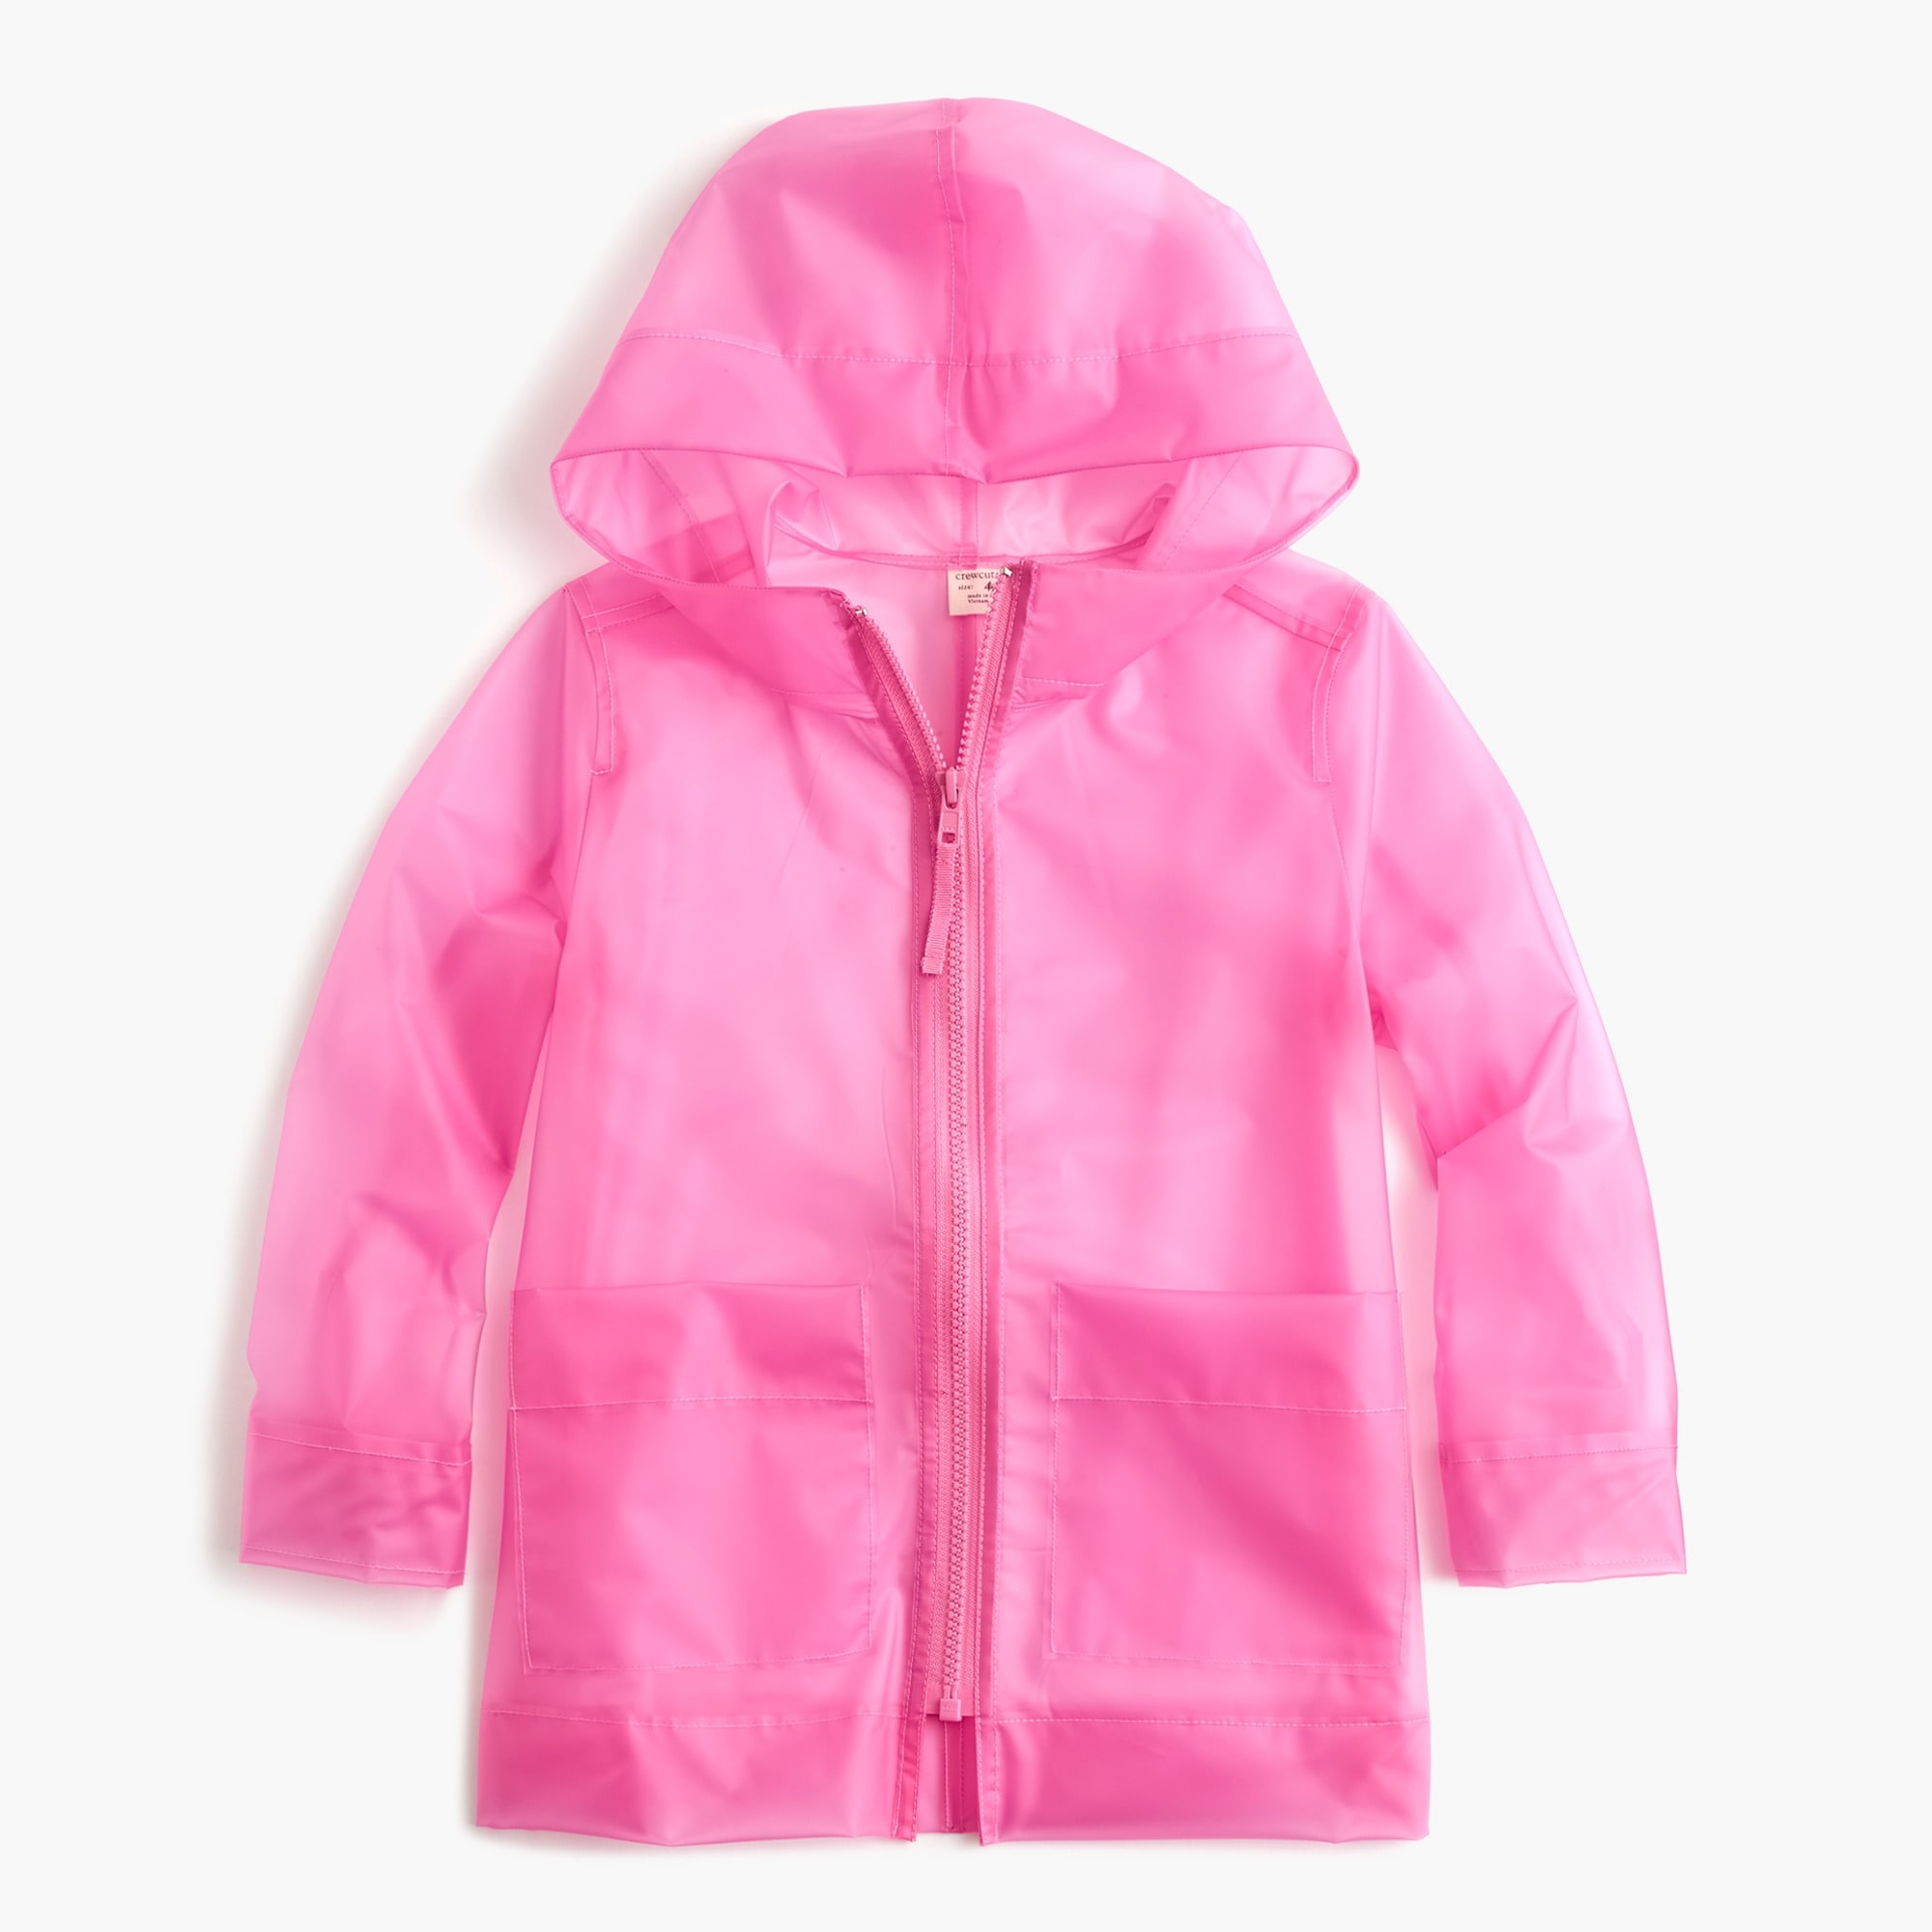 Image 1 for Kids' water-resistant rain jacket